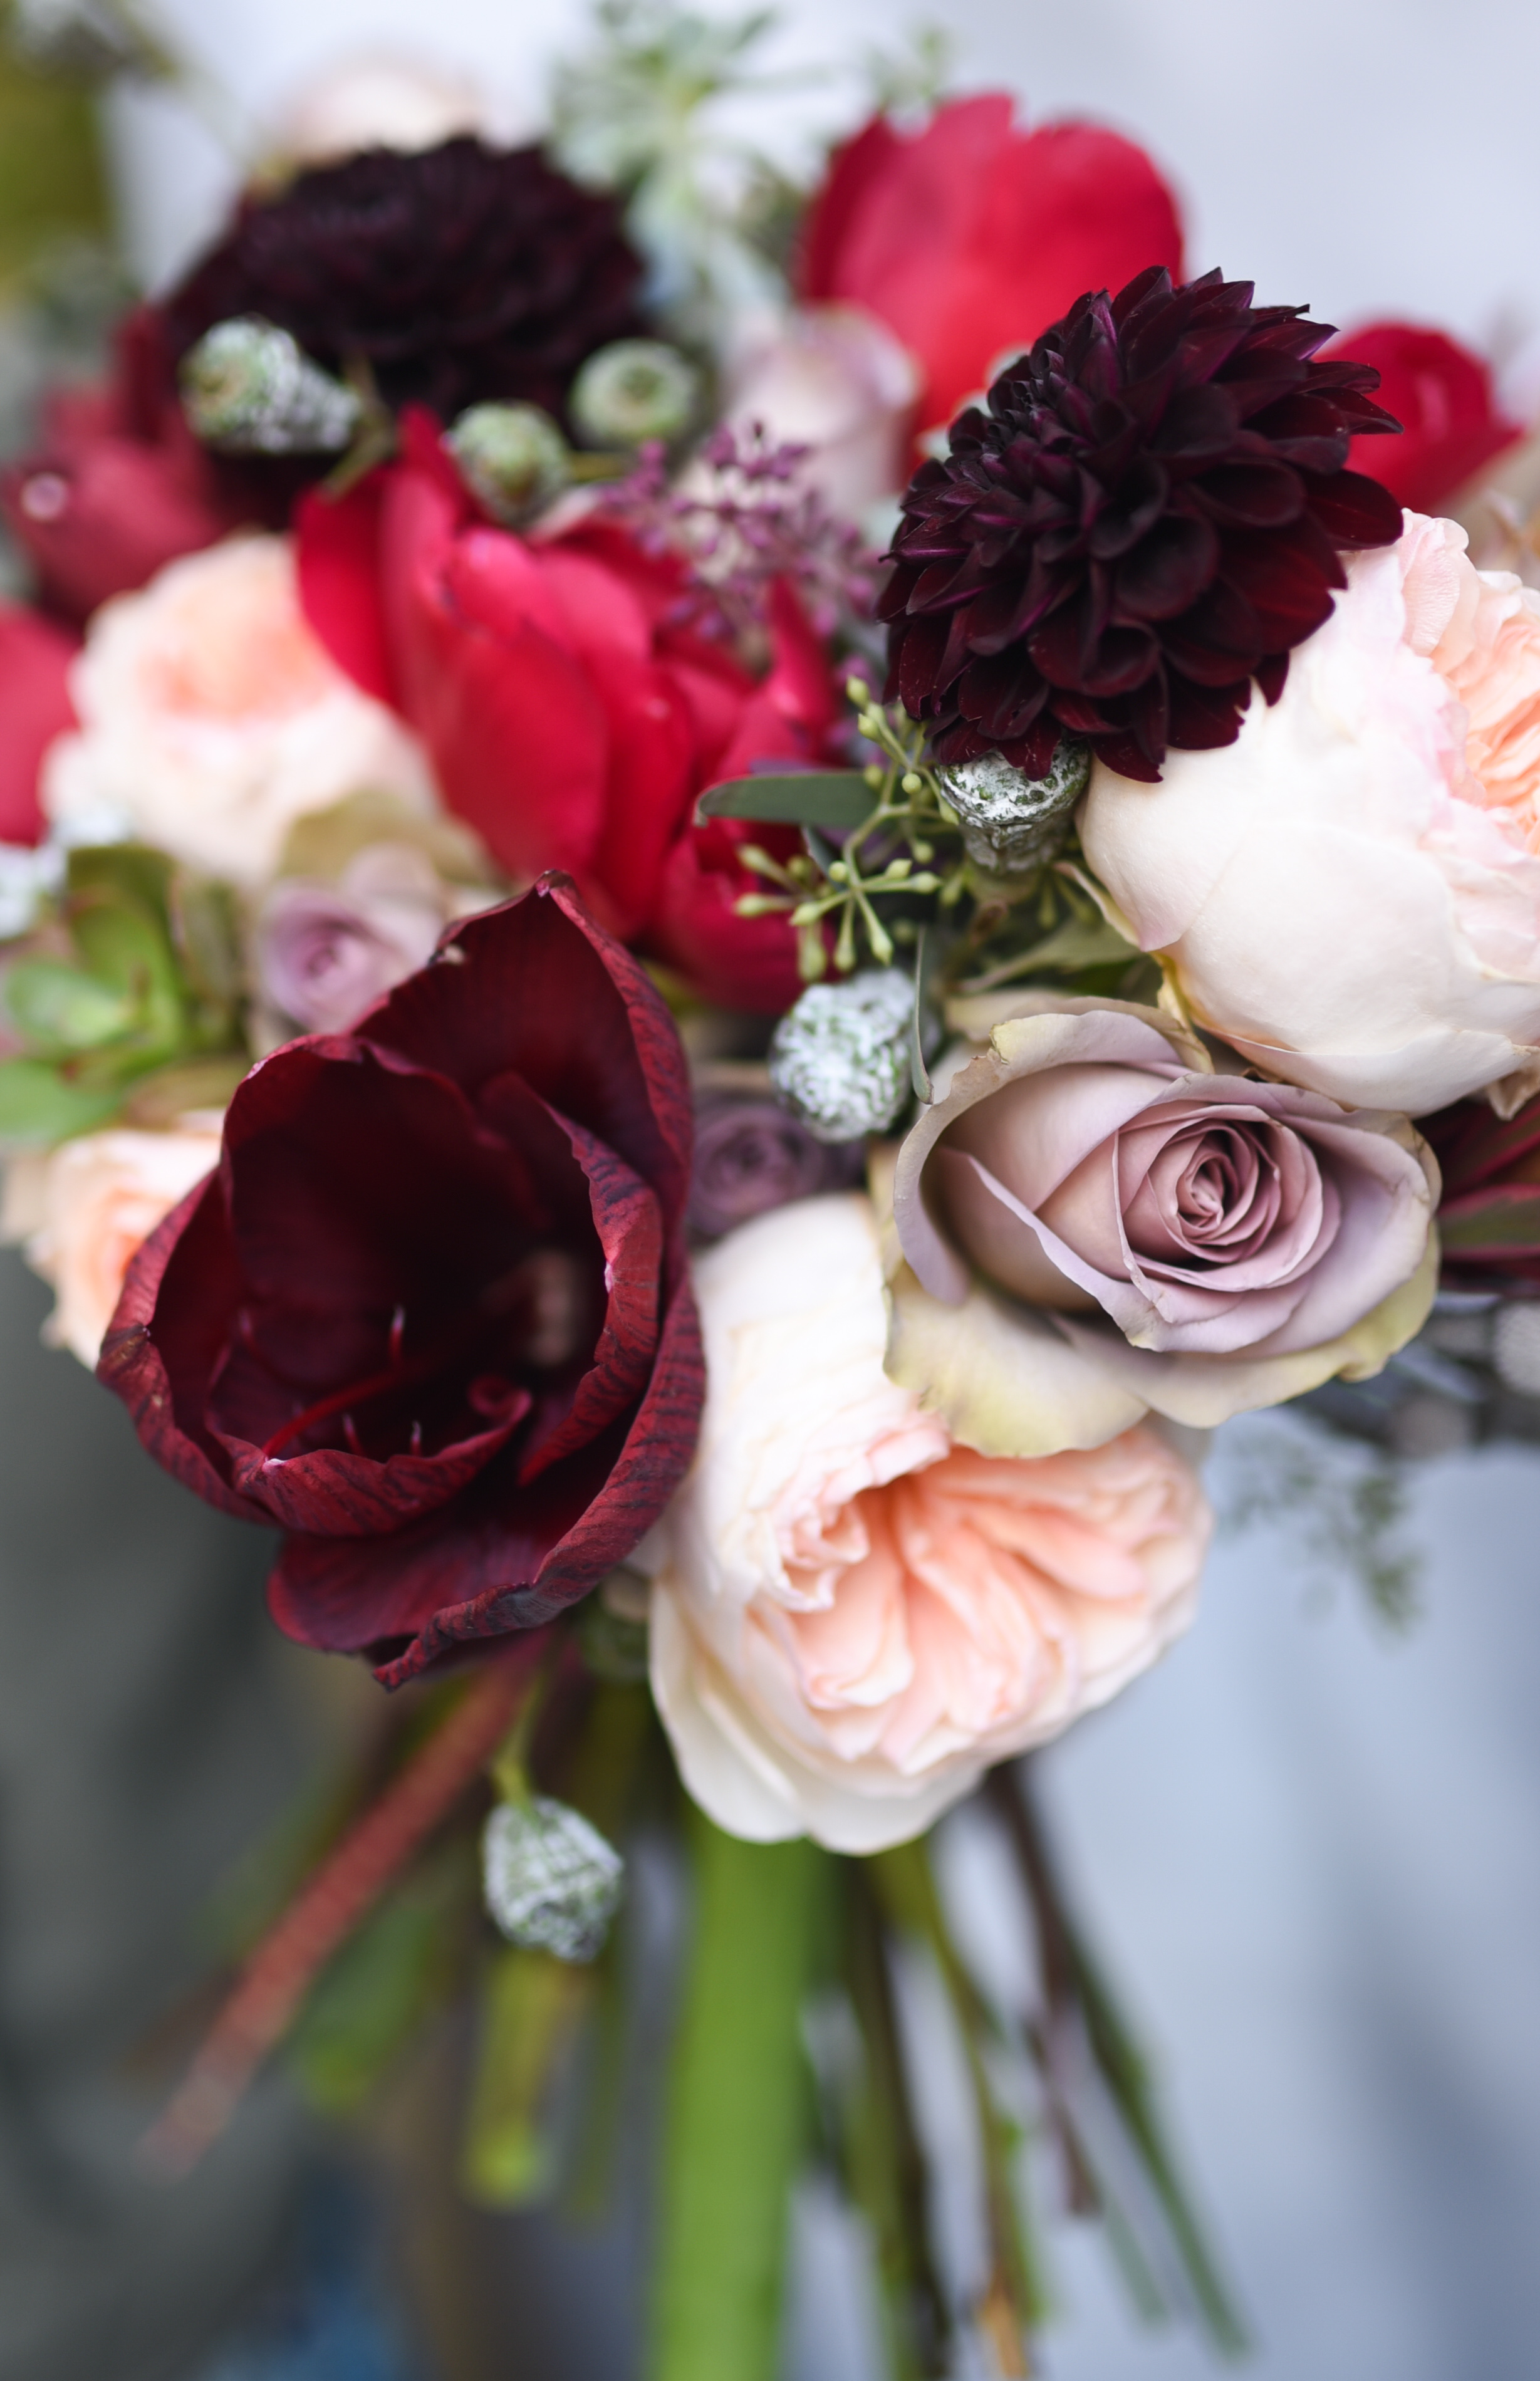 Amaryllis, dahlias, garden roses, peonies, roses, make the perfect bridal bouquet for mid fall